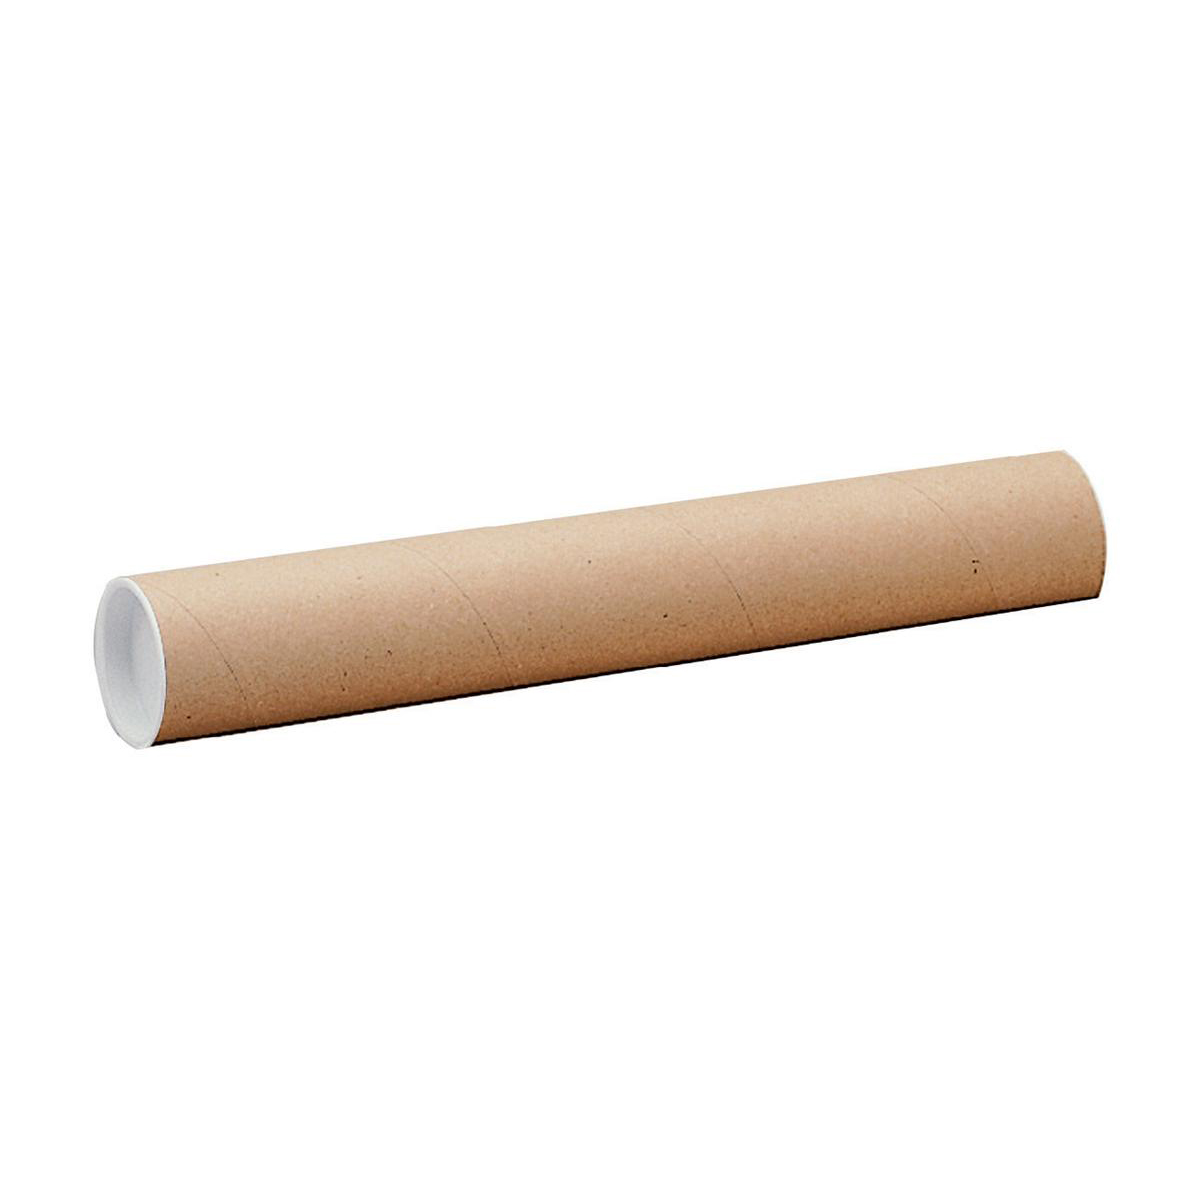 Postal Tube Cardboard with Plastic End Caps L610xDia.76mm PT 610/76MM Pack 12